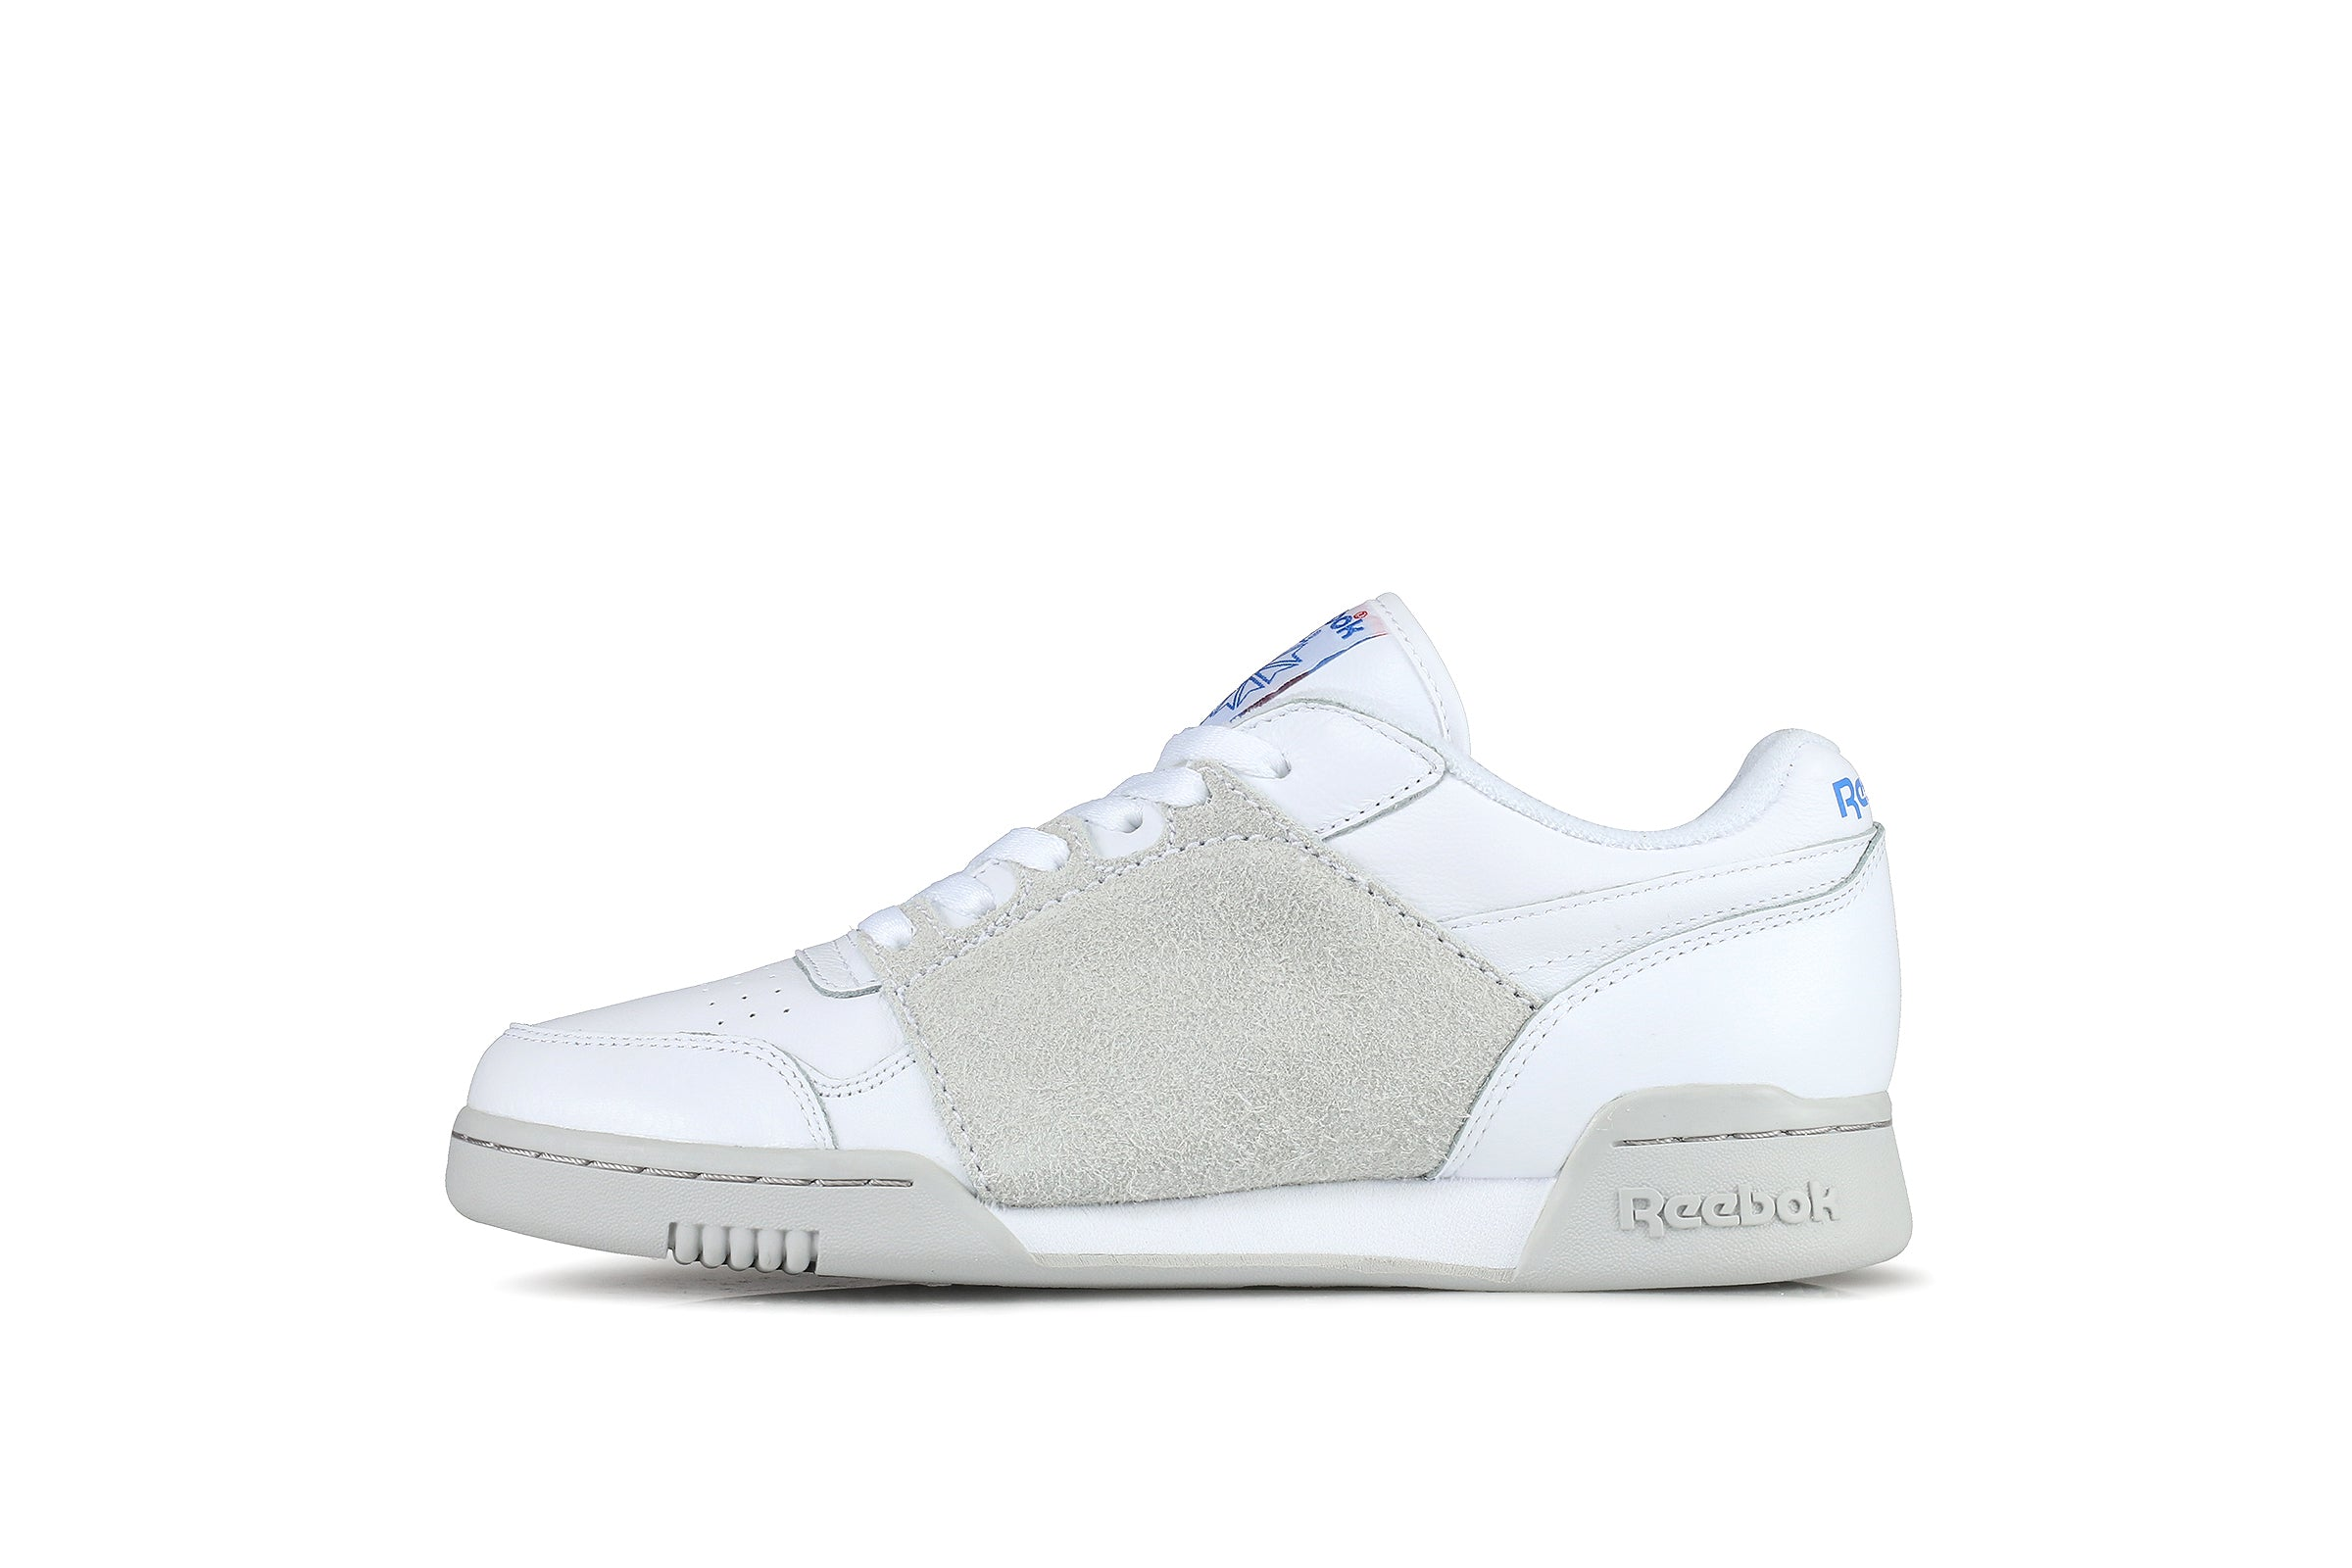 Reebok Workout Plus x Nepenthes